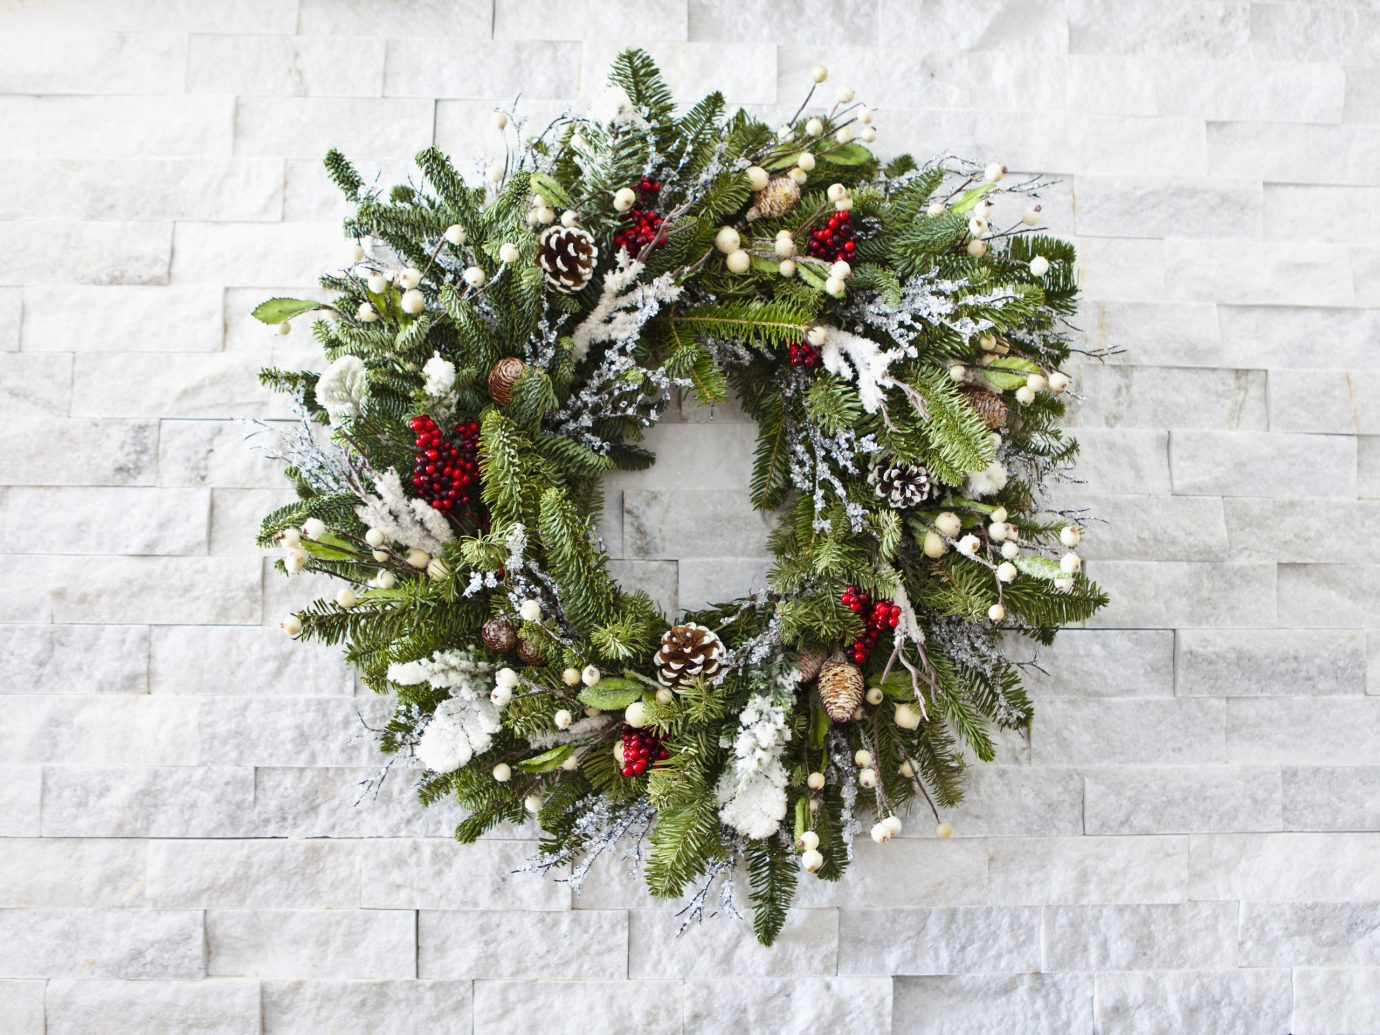 Style + Design building flower wreath christmas decoration branch plant flower arranging floristry twig decor Christmas tree floral design stone set